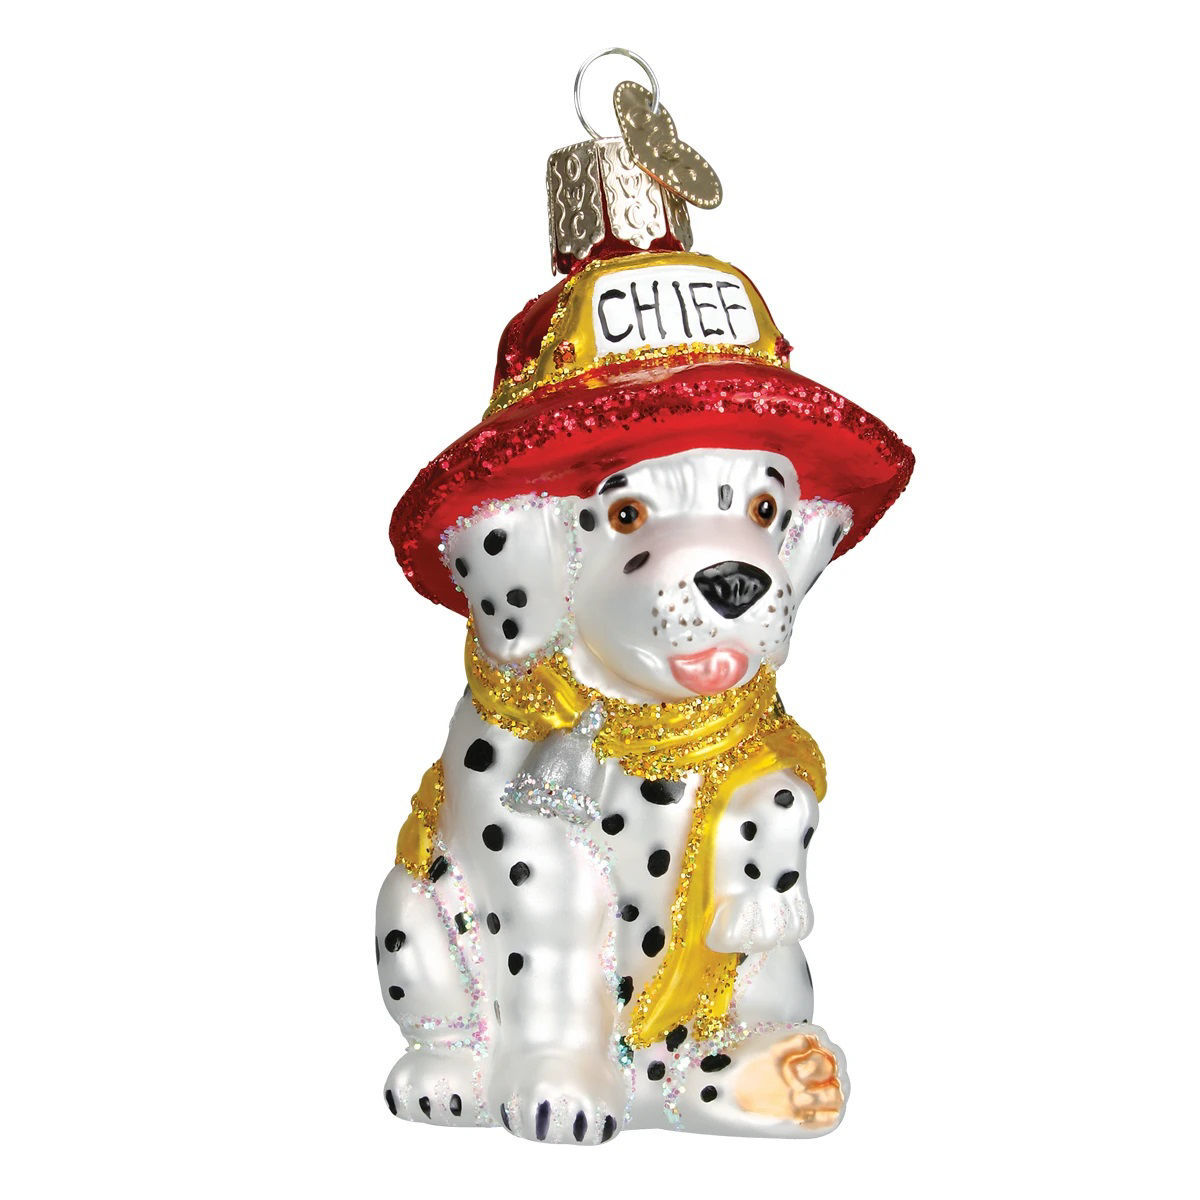 Dalmatian Pup Ornament by Old World Christmas